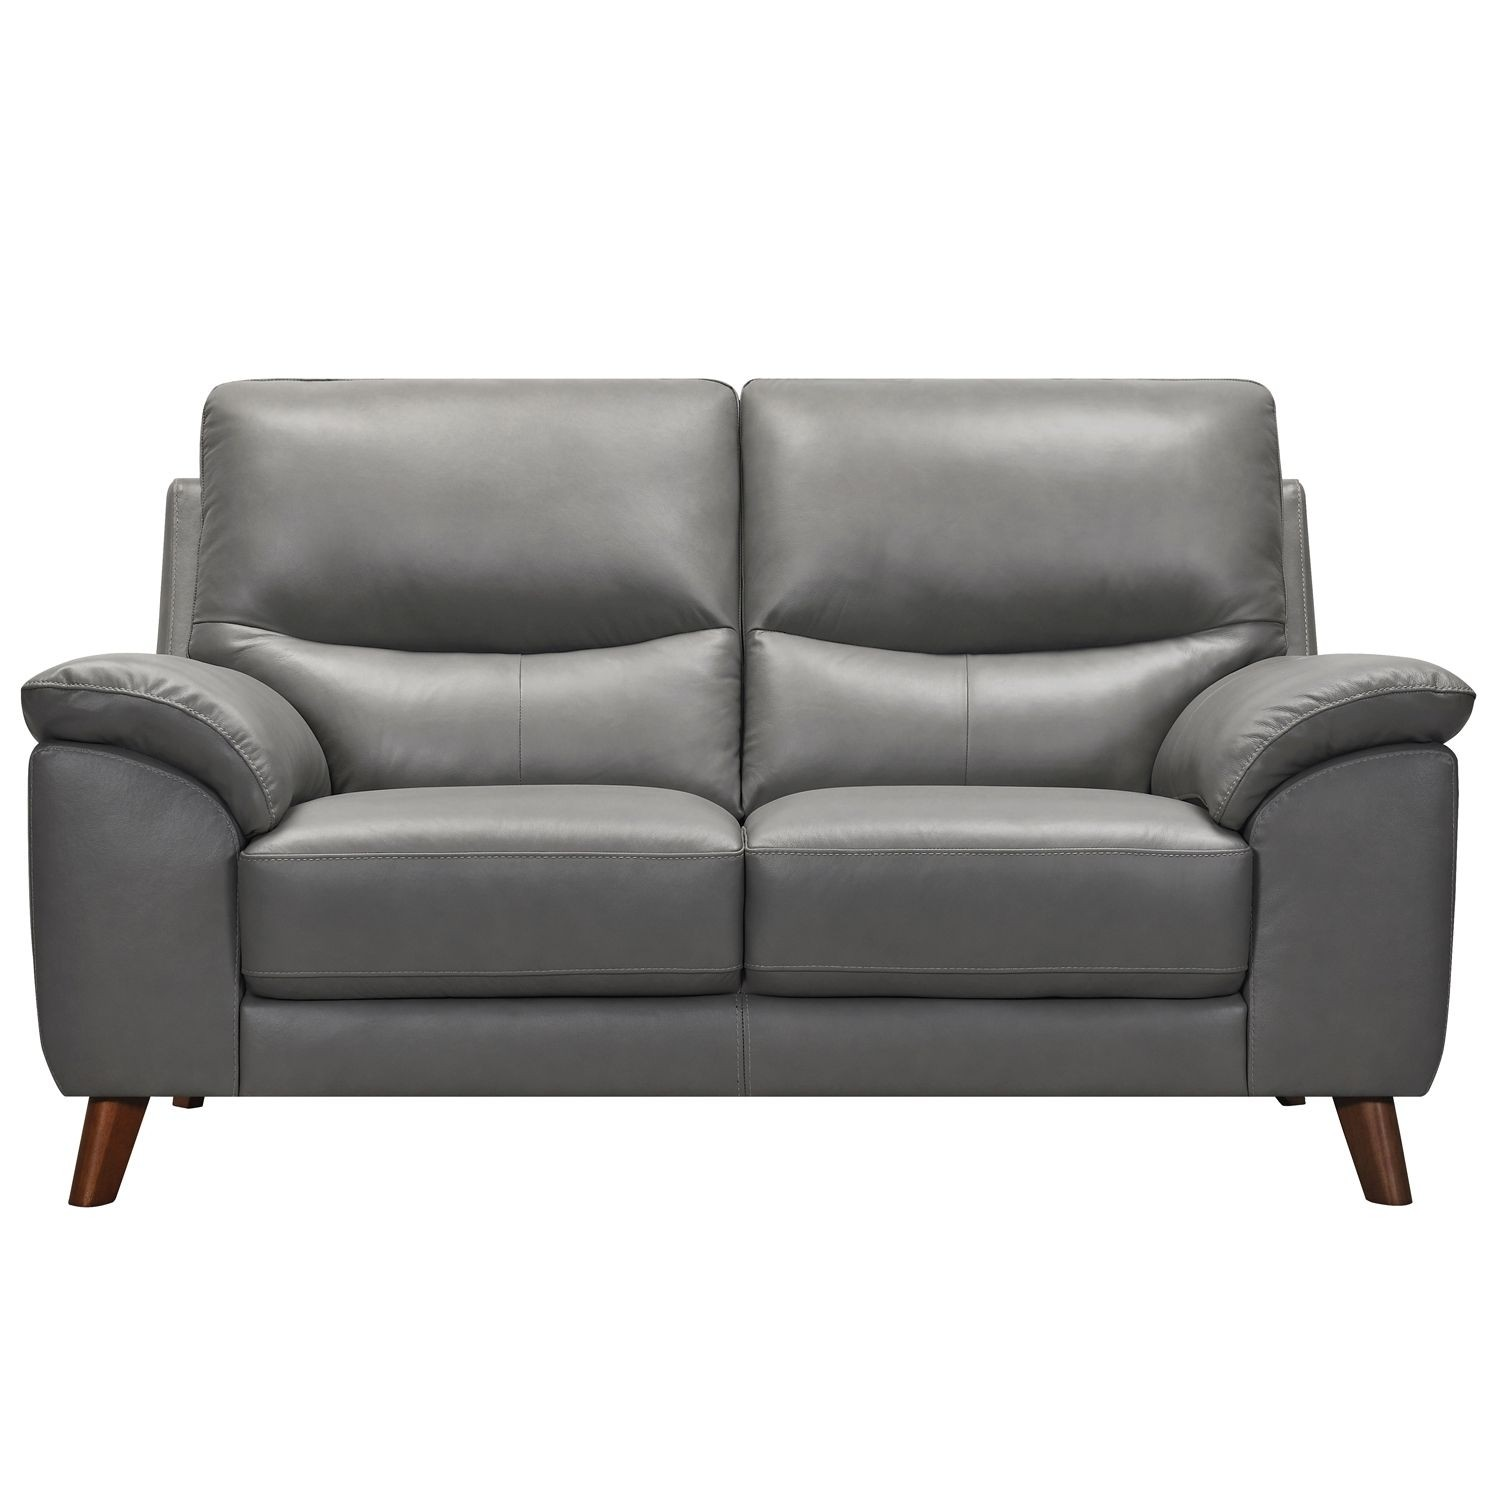 Eve Two Seater Leather Sofa